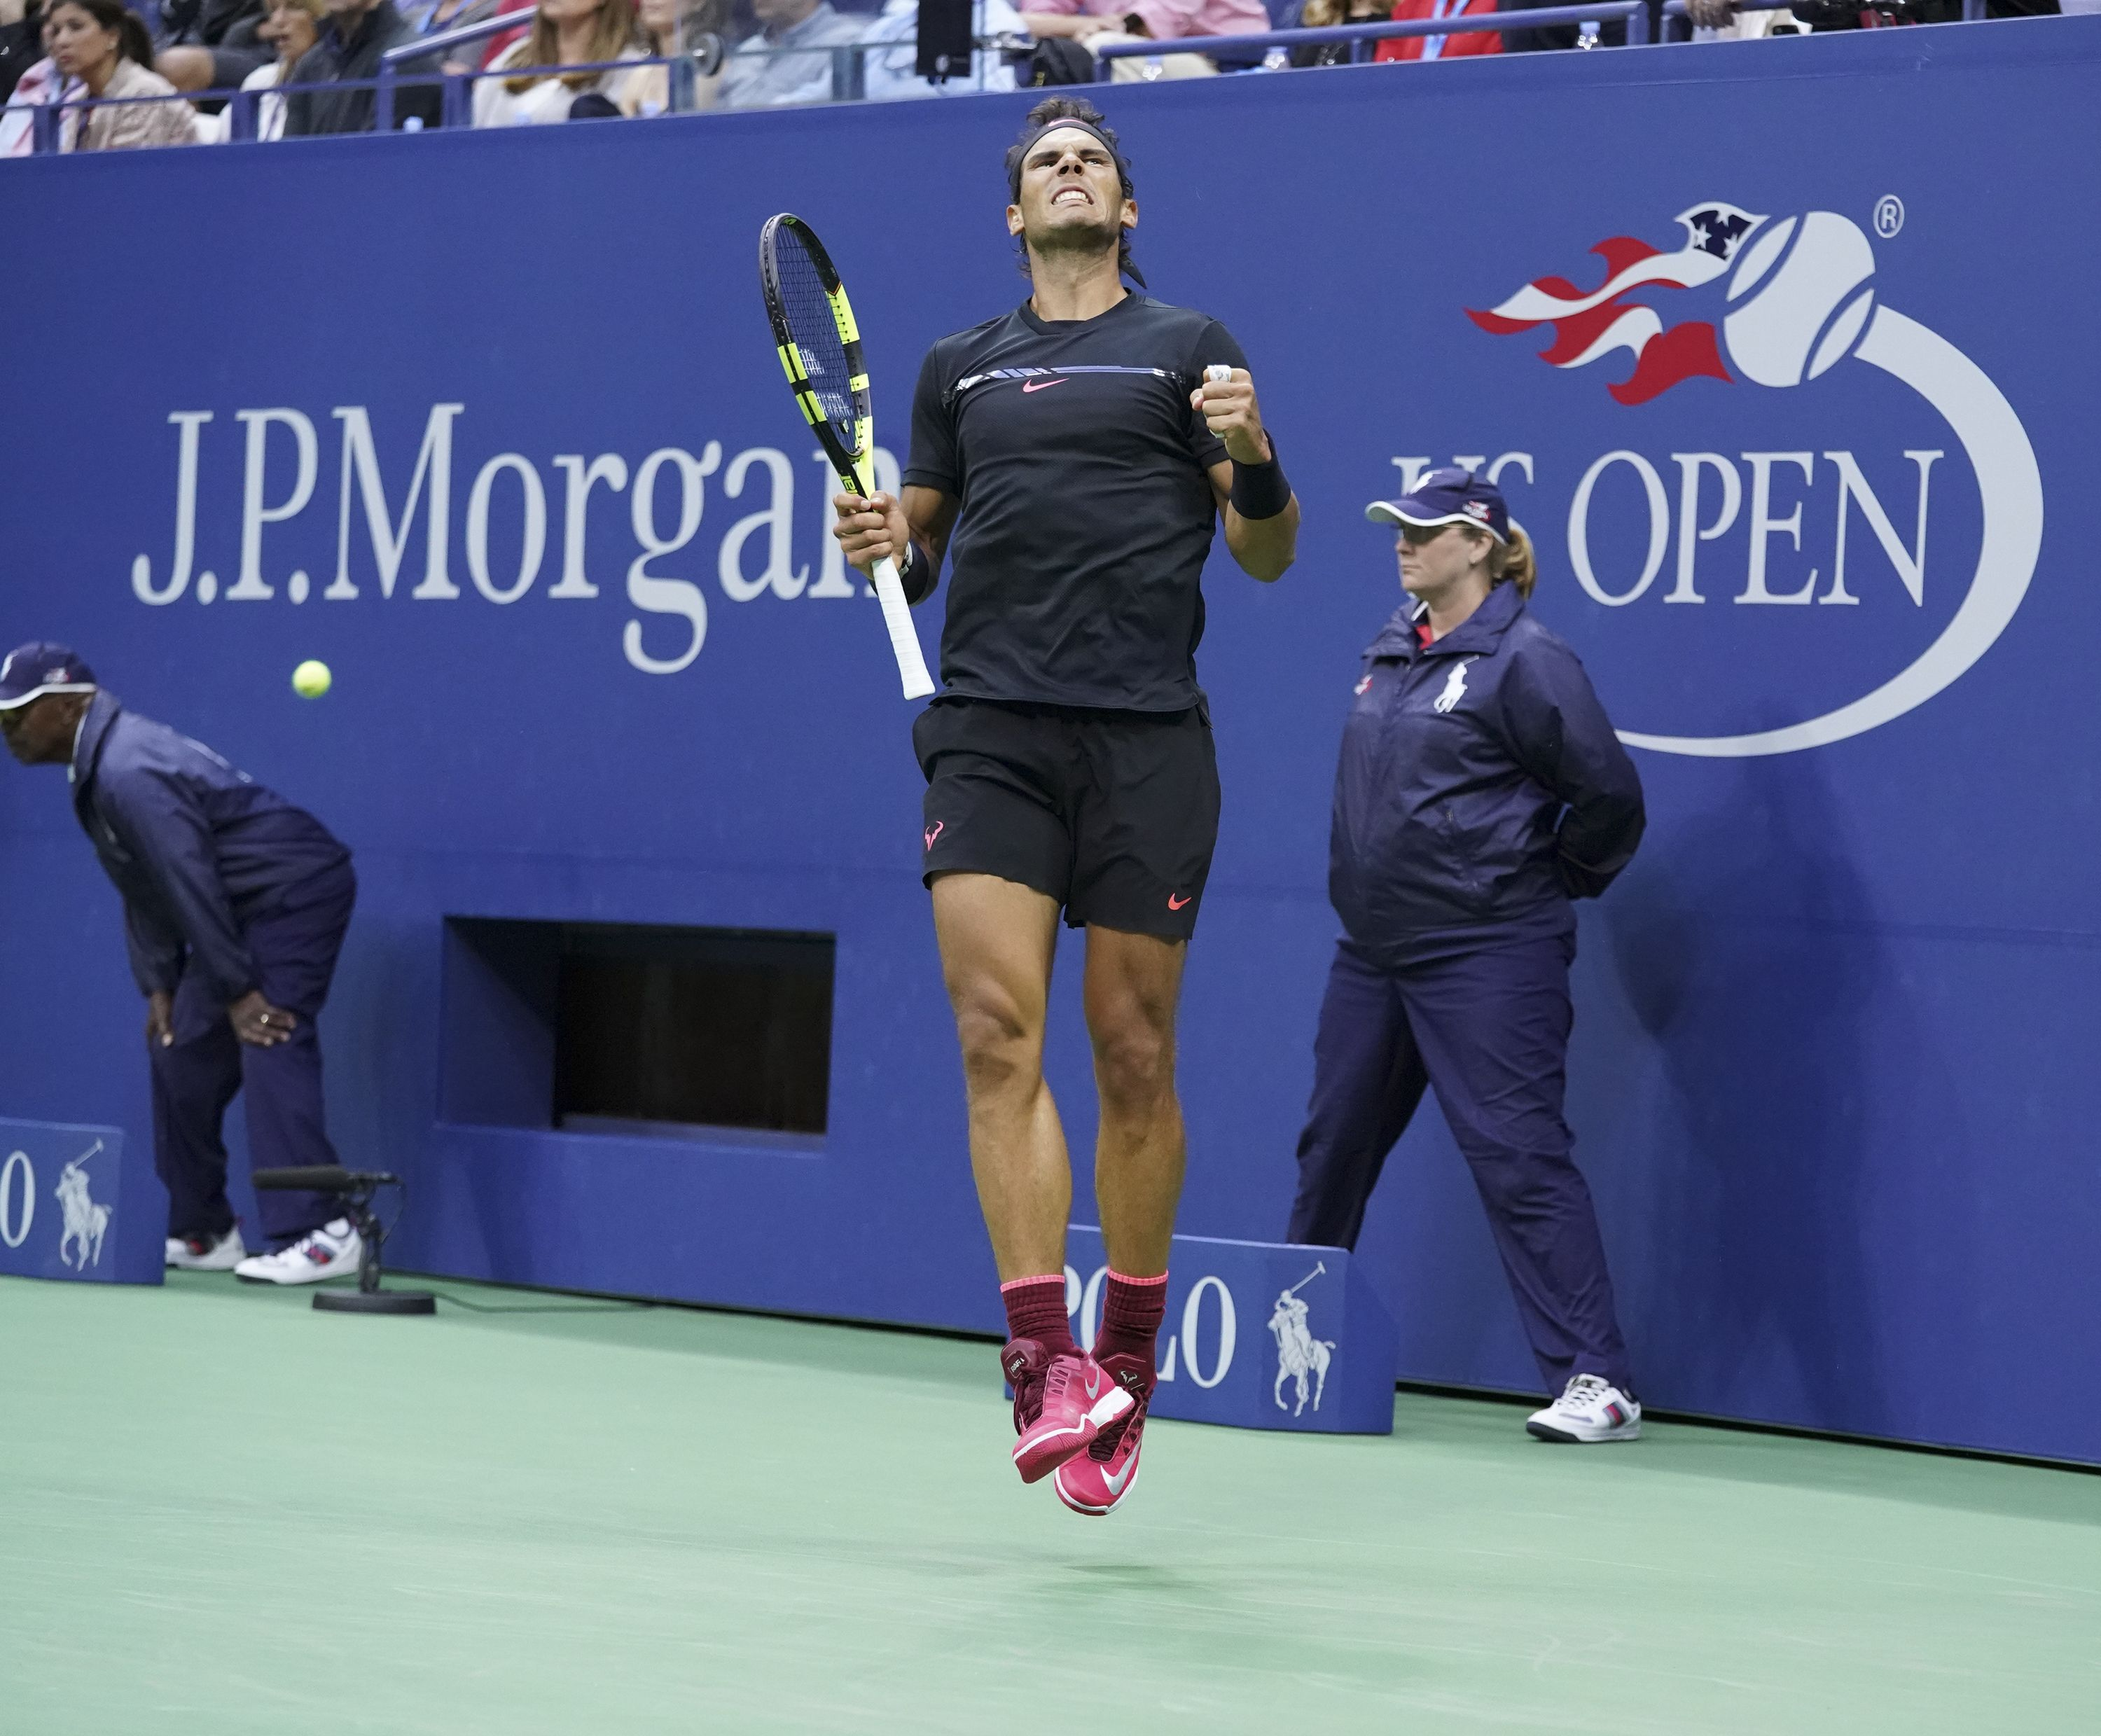 The US Open Final was a masterclass in tennis by Nadal (Photo: Lev Radin)